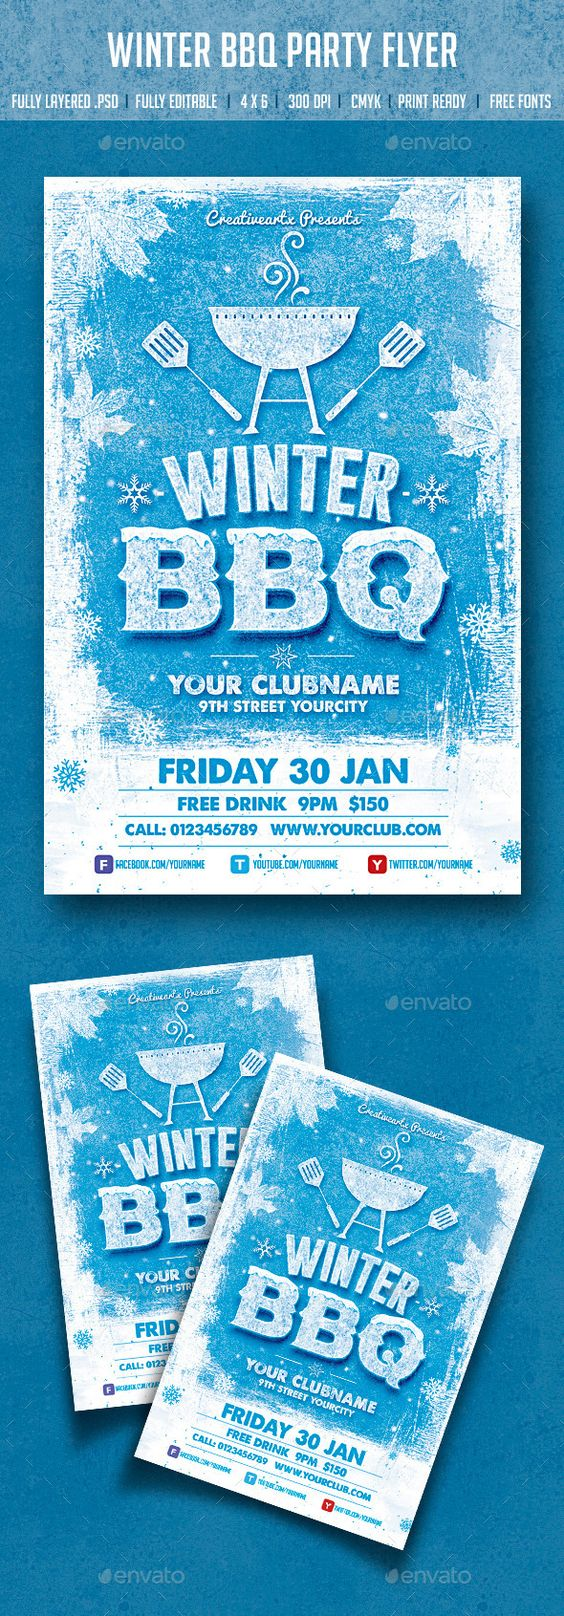 winter bbq party party events flyer template and bbq party winter bbq party flyer template psd design graphicriver